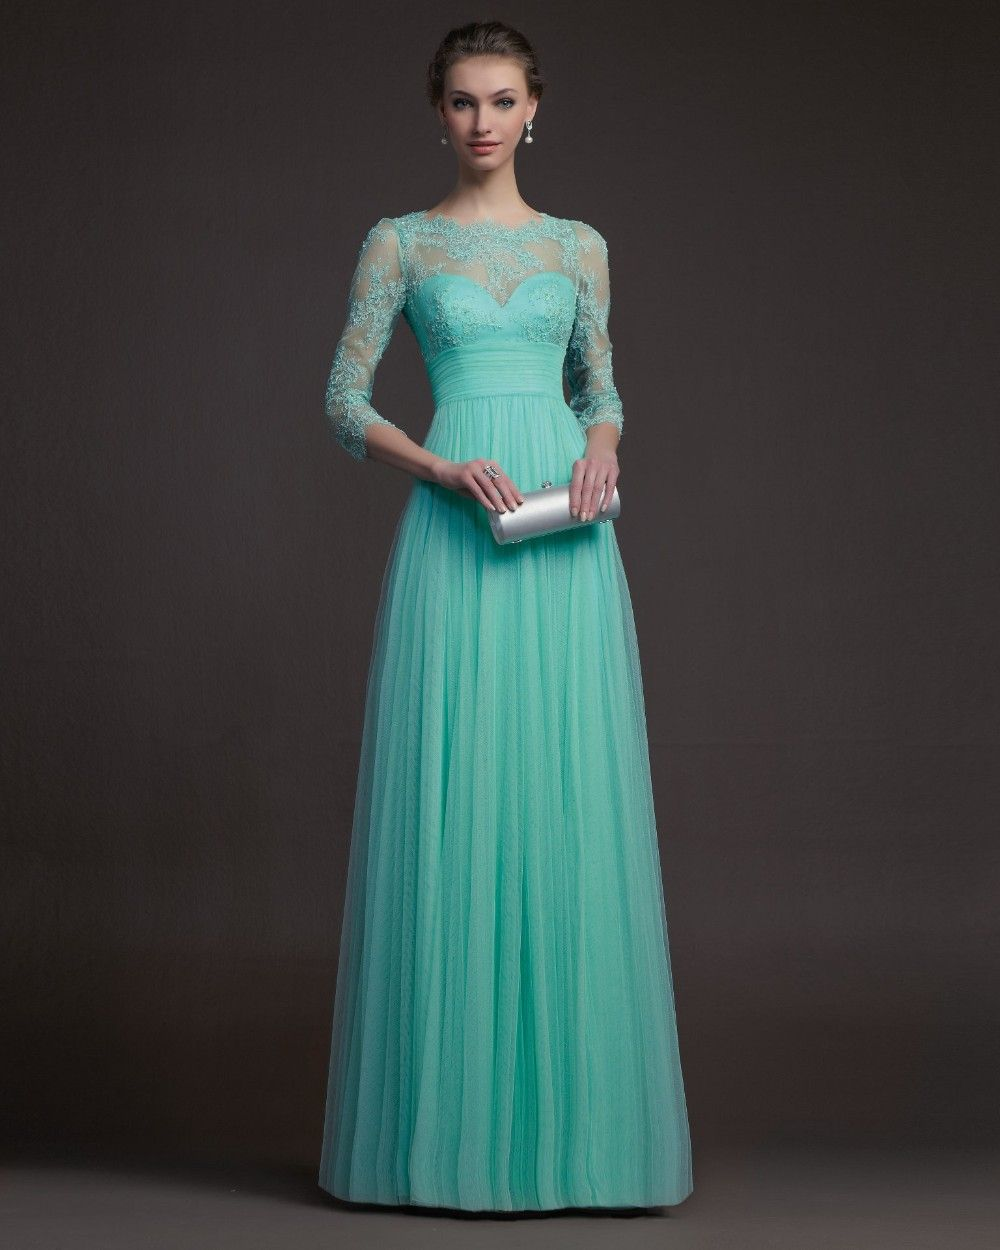 35 Beautiful Evening Dresses For Women | Turquoise, Robe and Designers